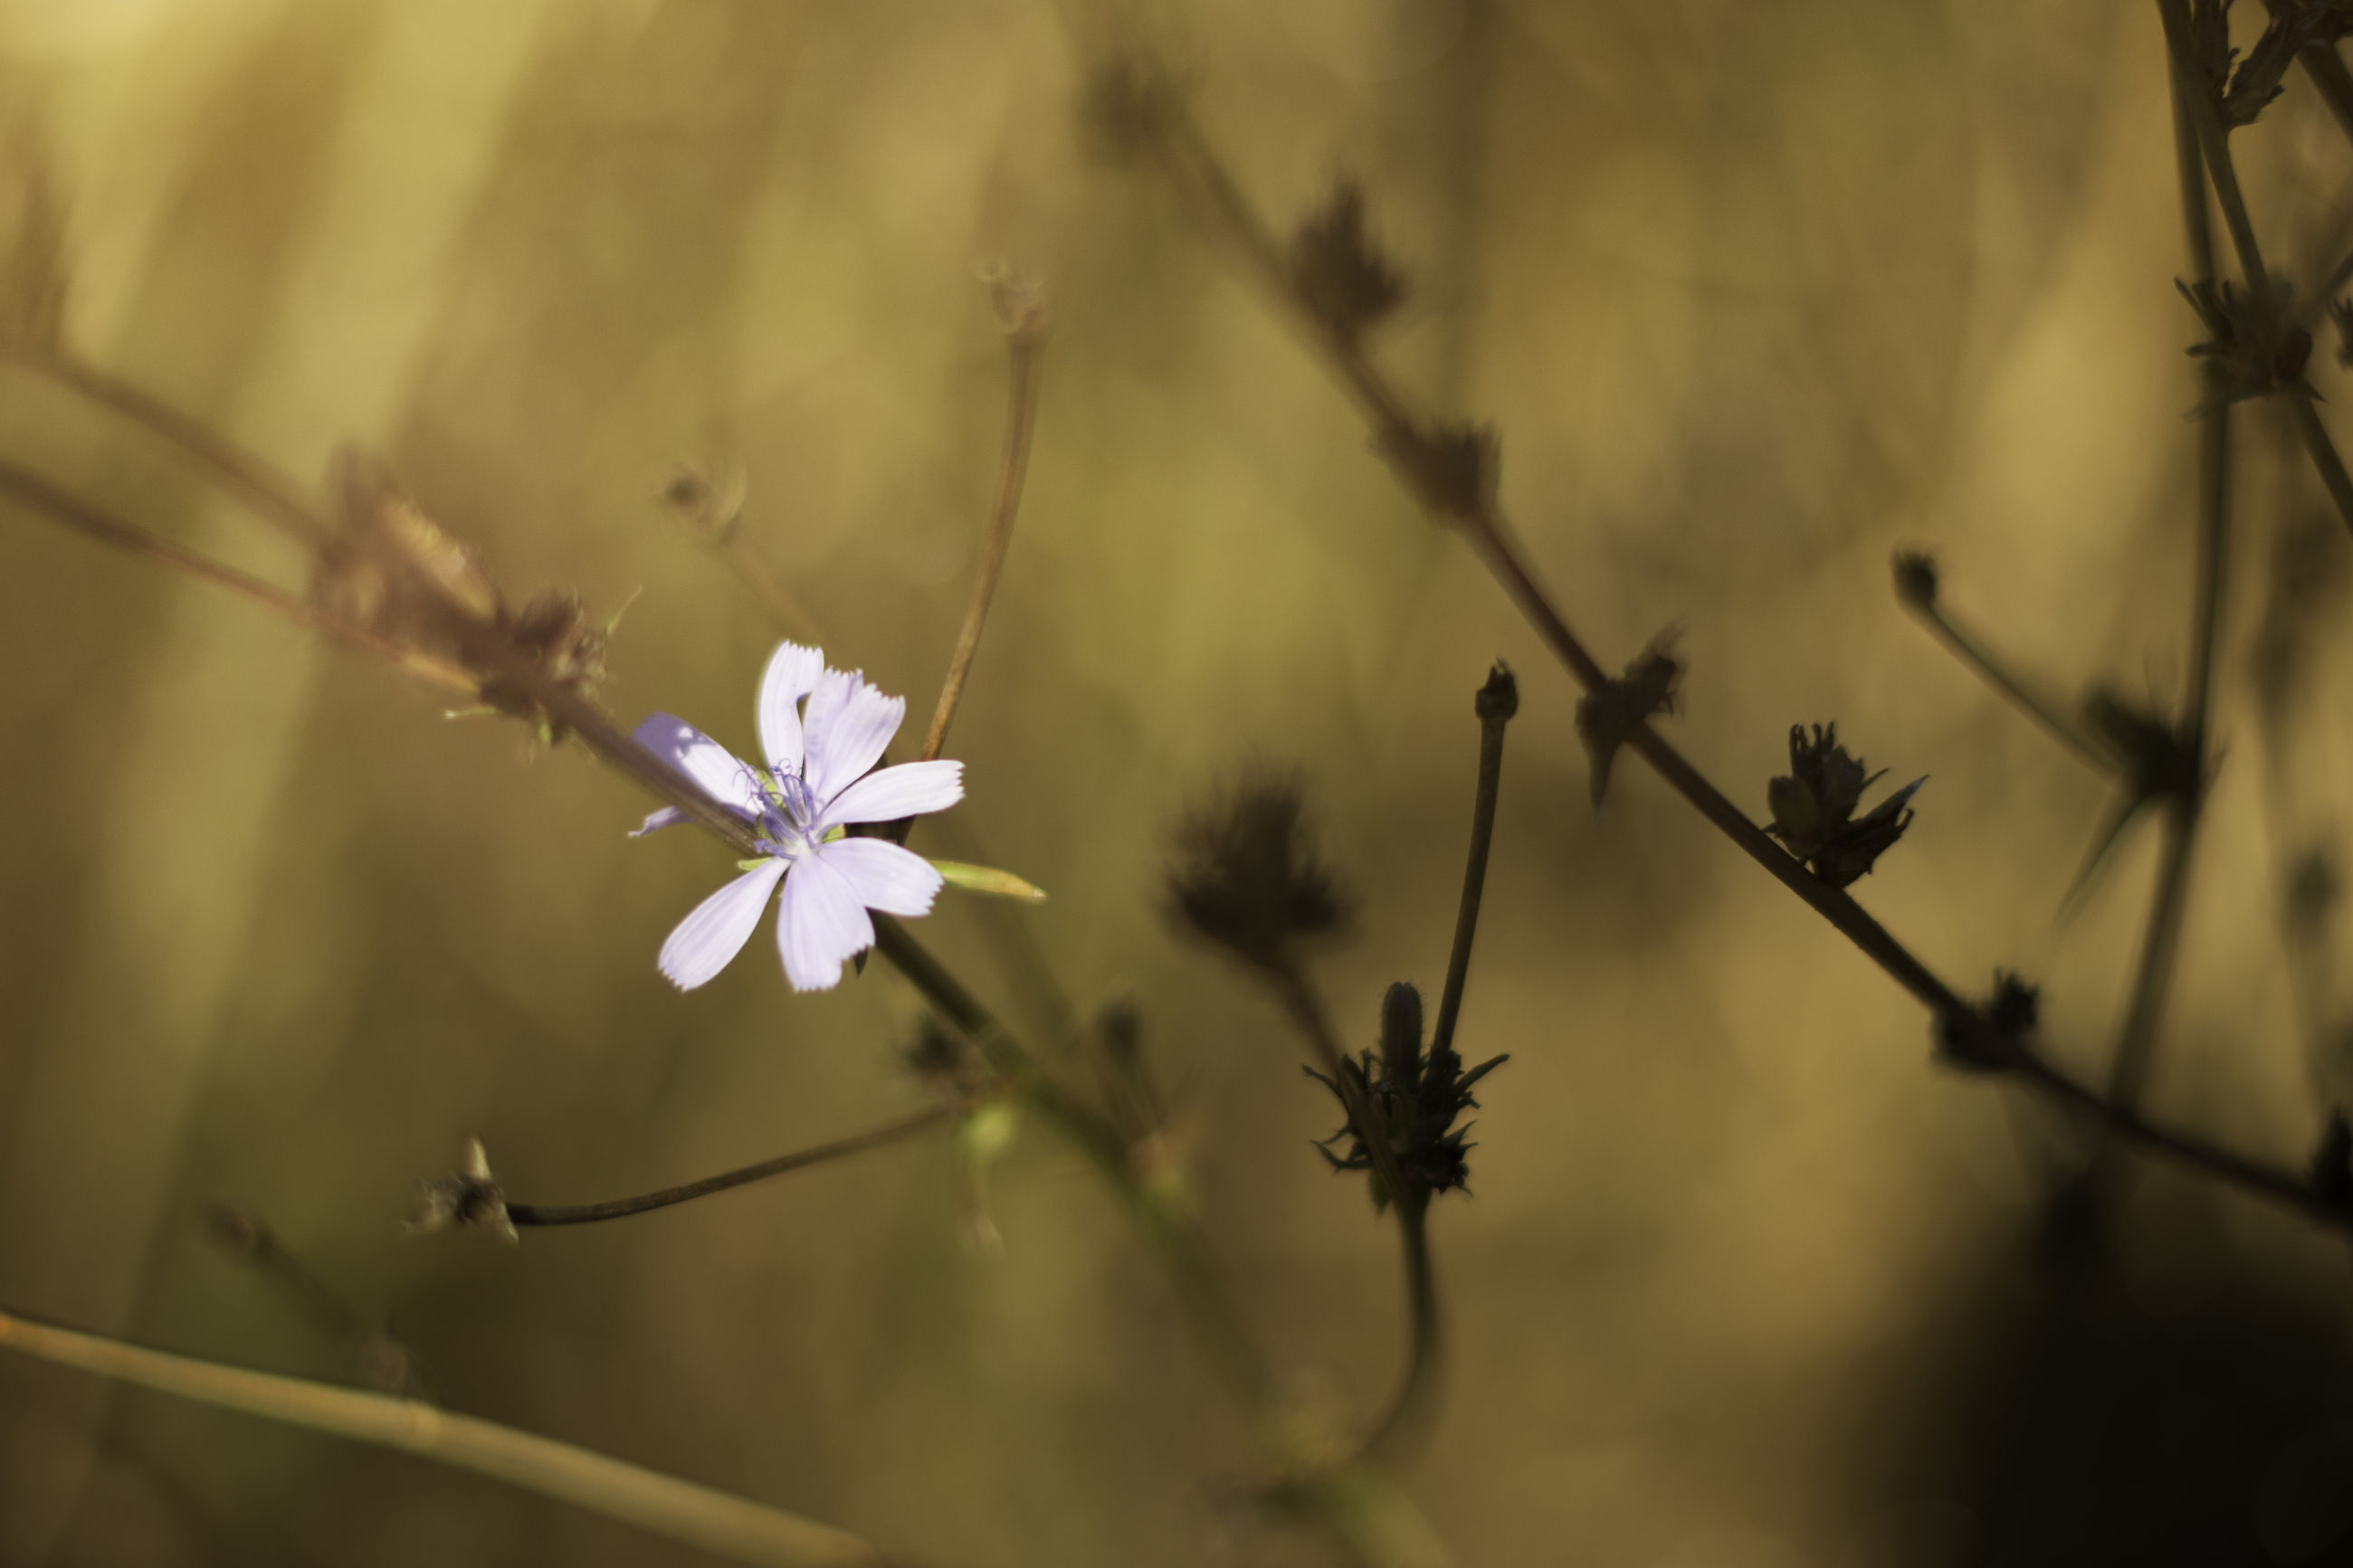 nature, growth, fragility, beauty in nature, flower, close-up, focus on foreground, no people, freshness, plant, flower head, outdoors, day